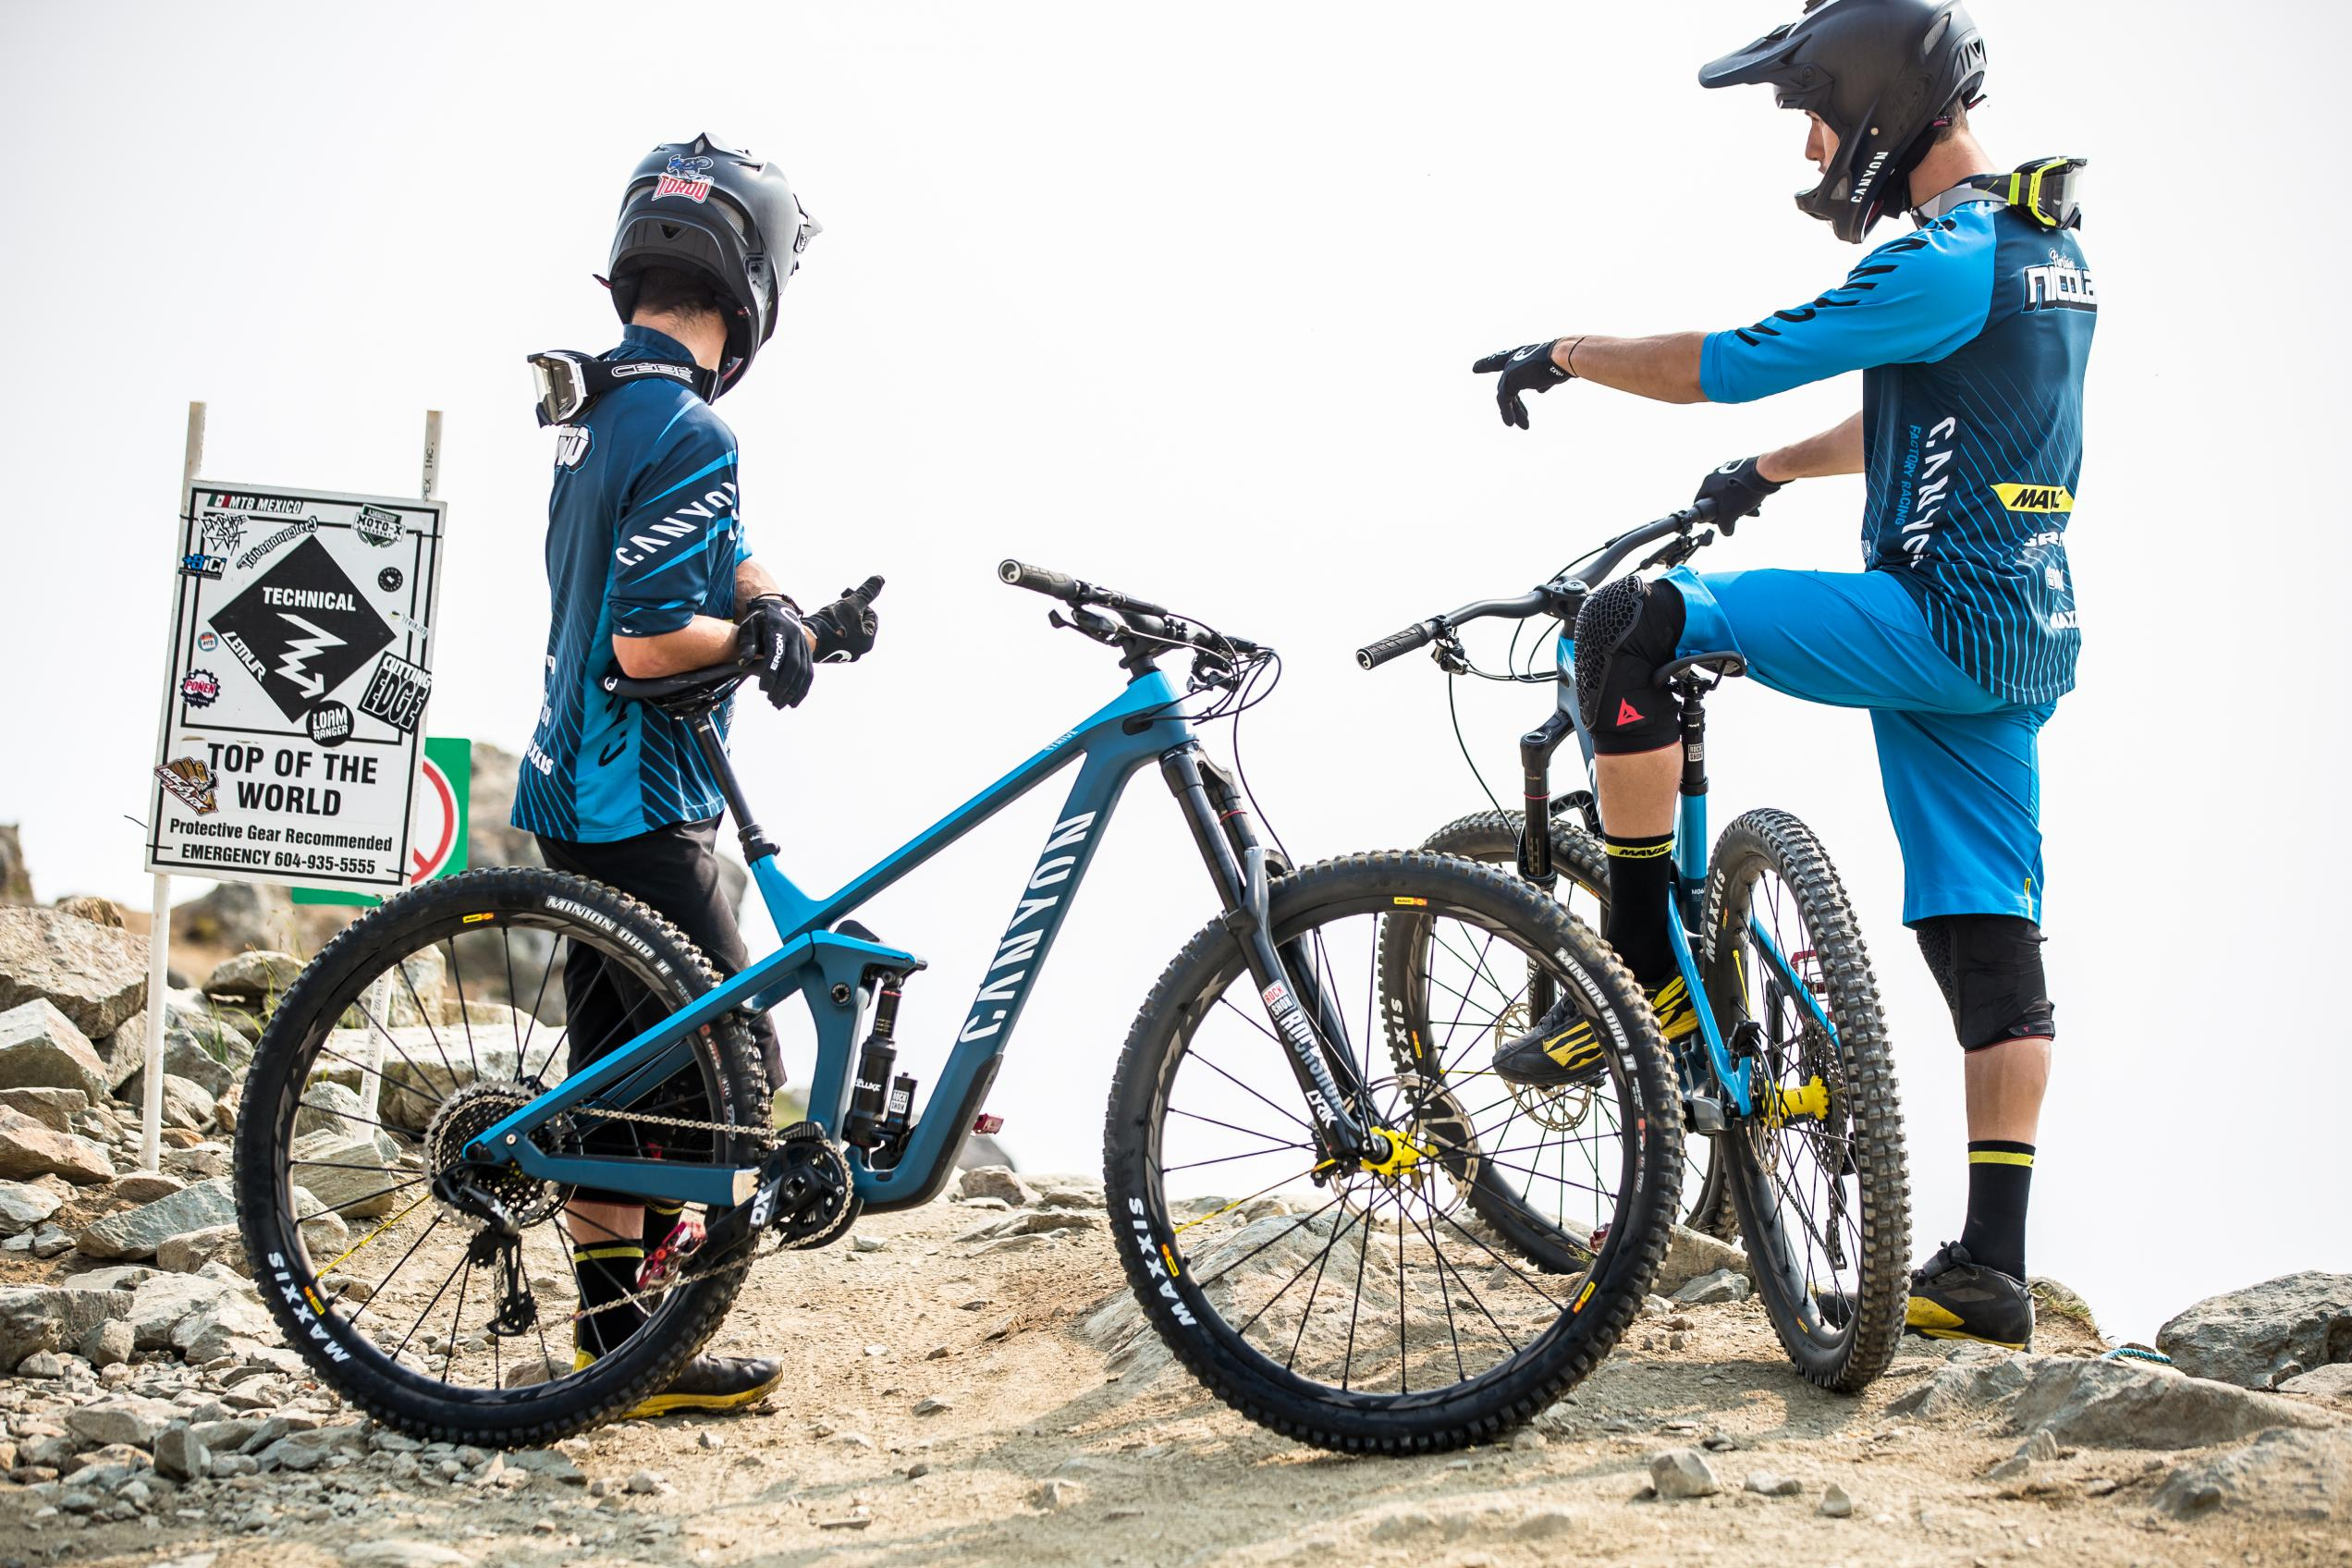 The Canyon Strive Gives Riders 2 Bikes in 1 | GearJunkie